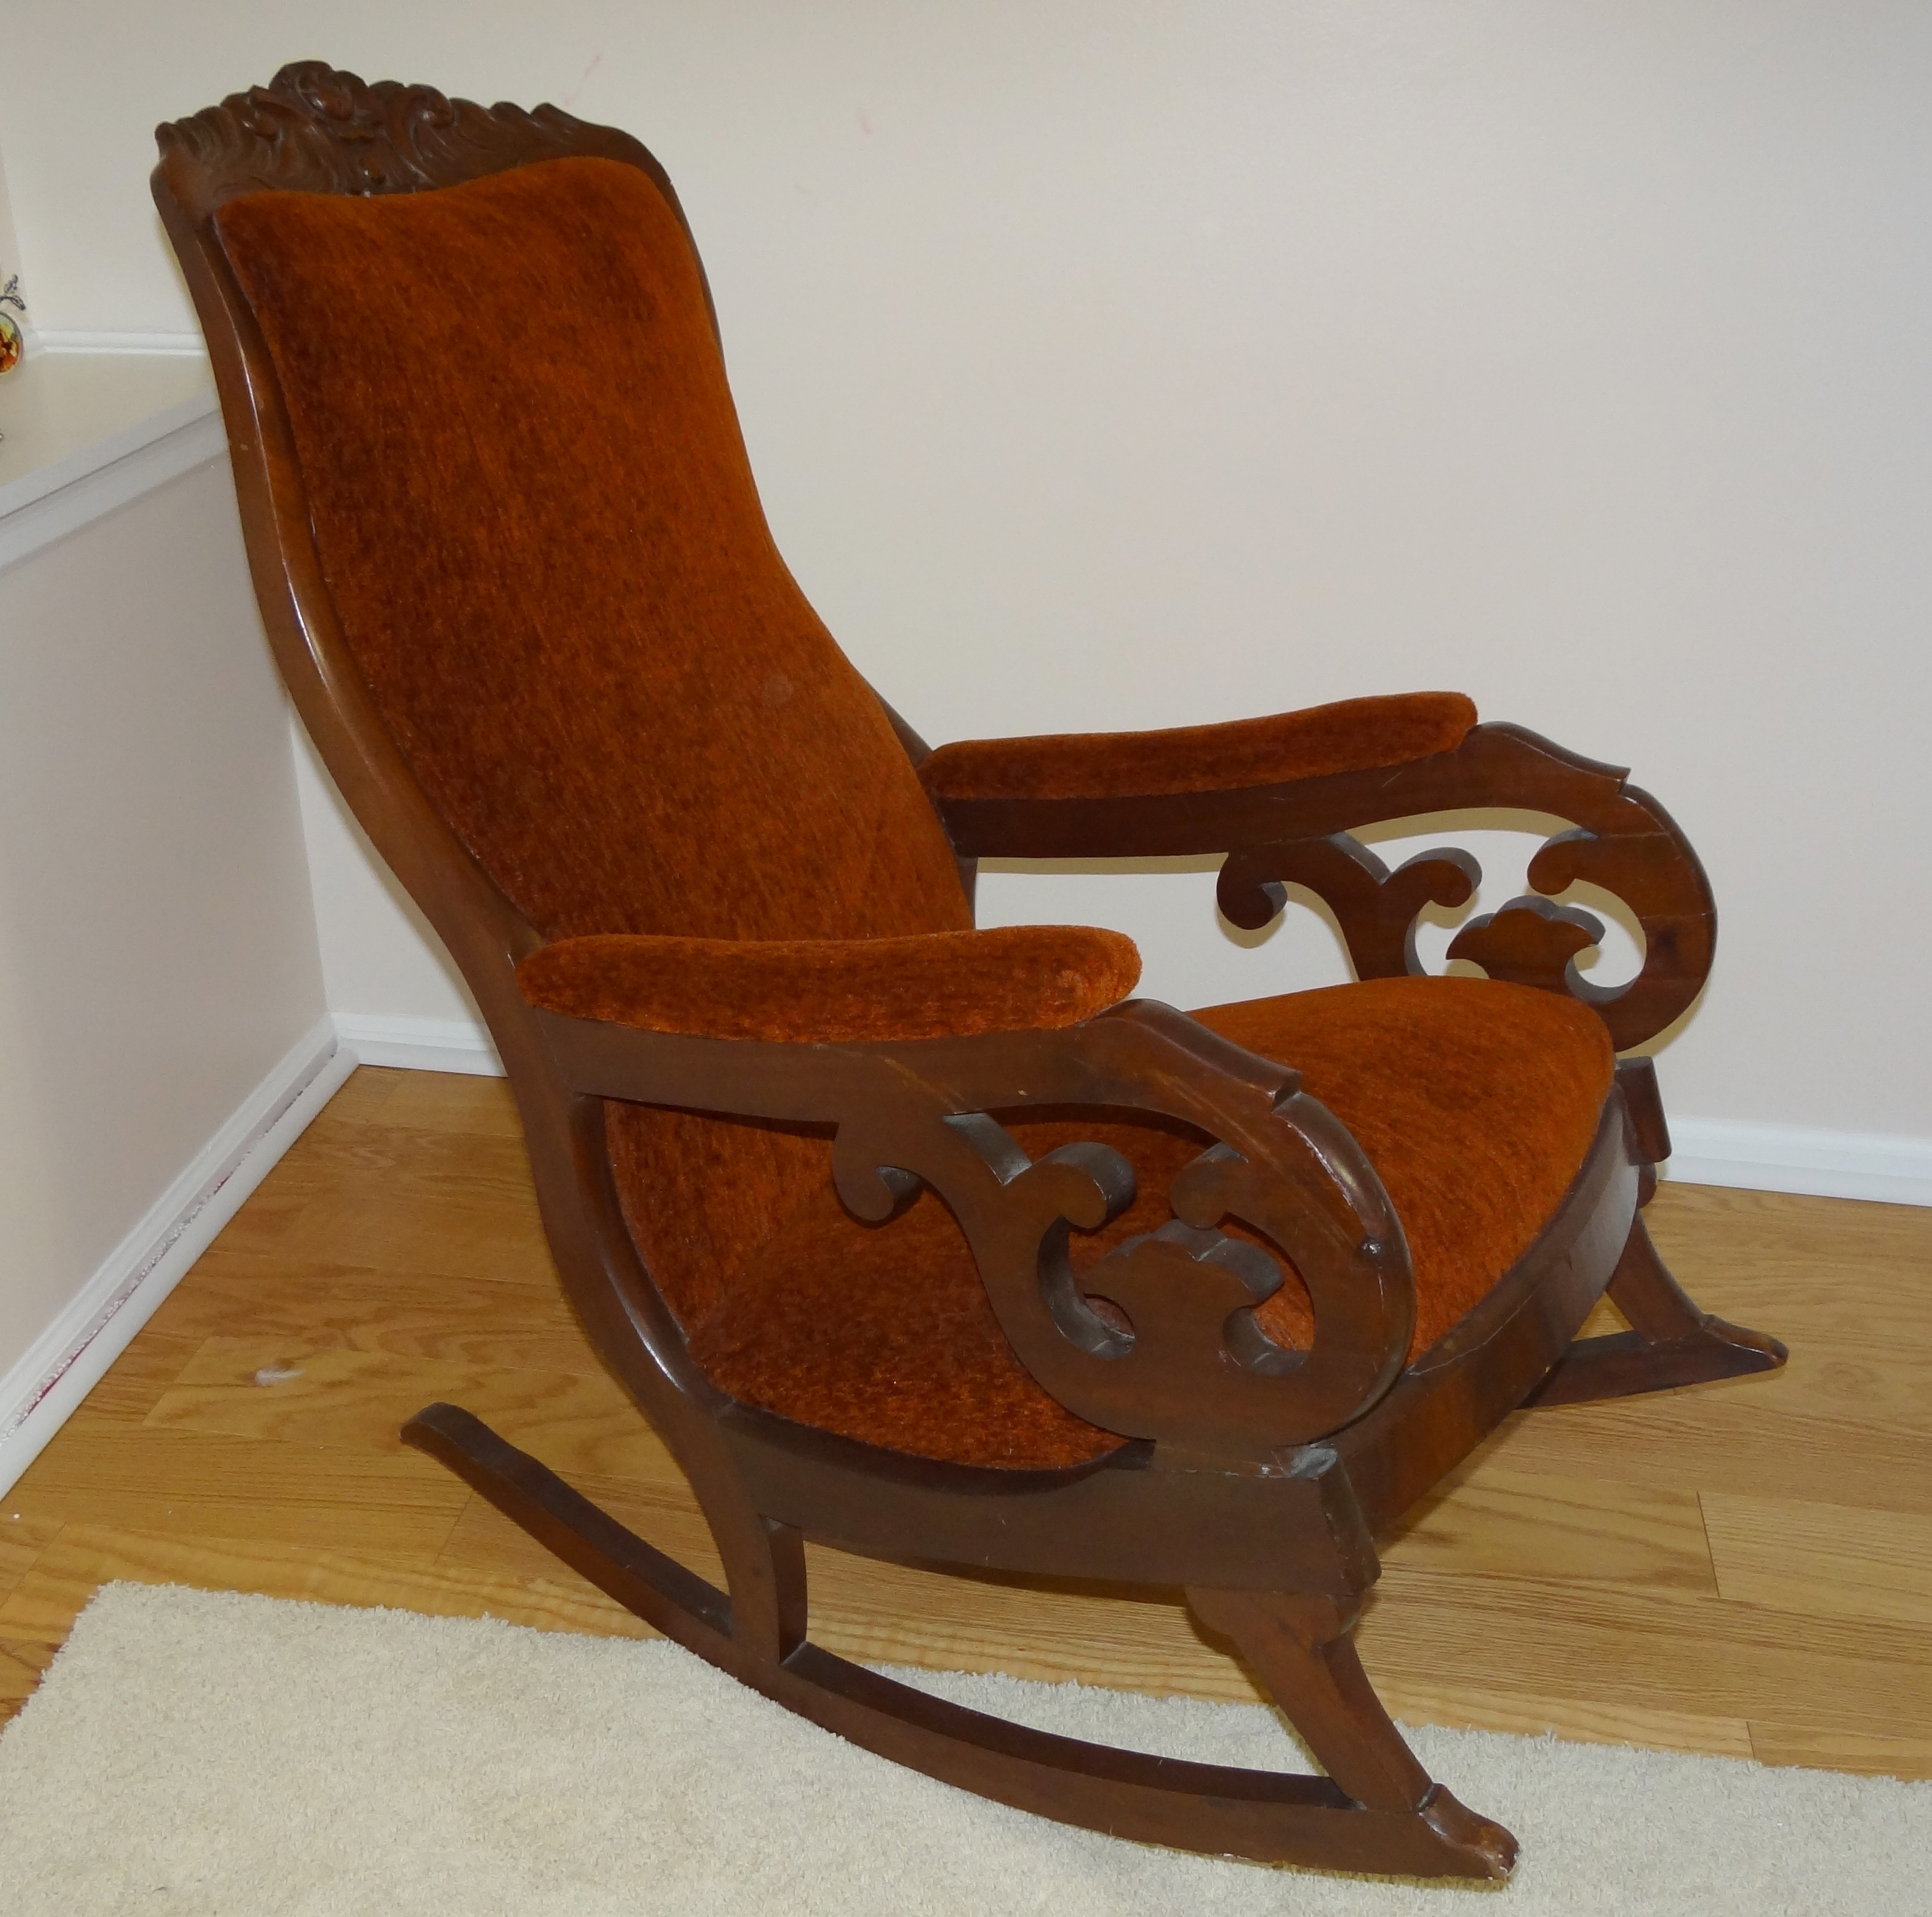 Favorite Beautiful Wooden Rocking Chairs Prices 11 Furniture Upholstered With Rocking Chairs With Springs (View 12 of 15)